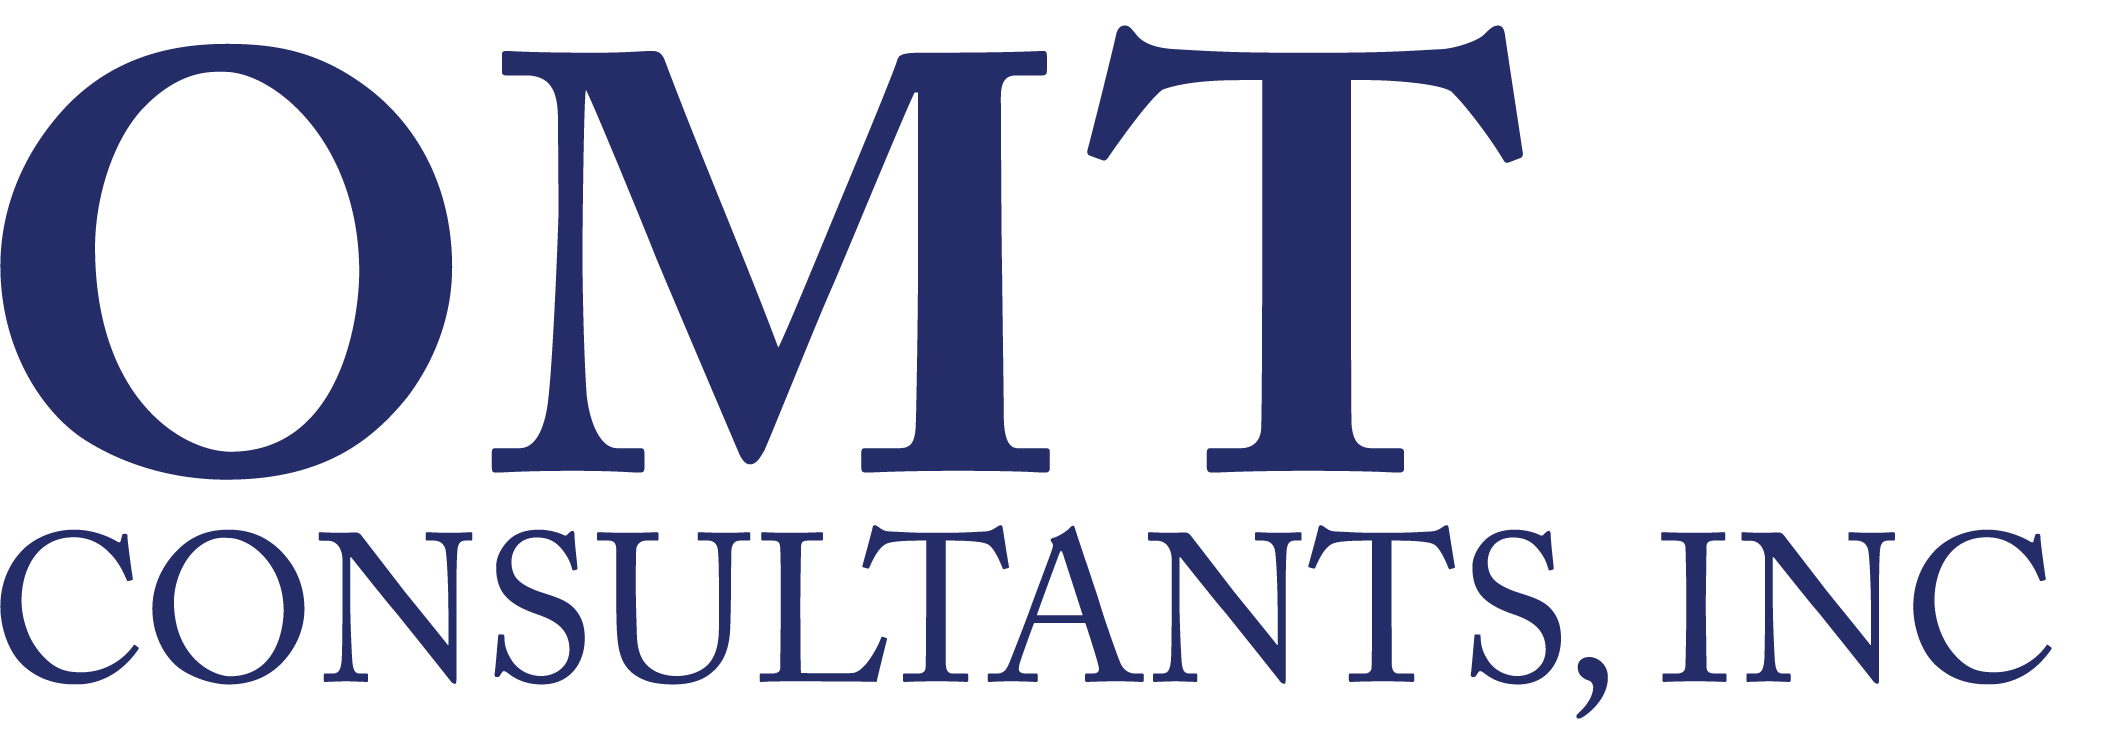 OMT Consultants, Inc.